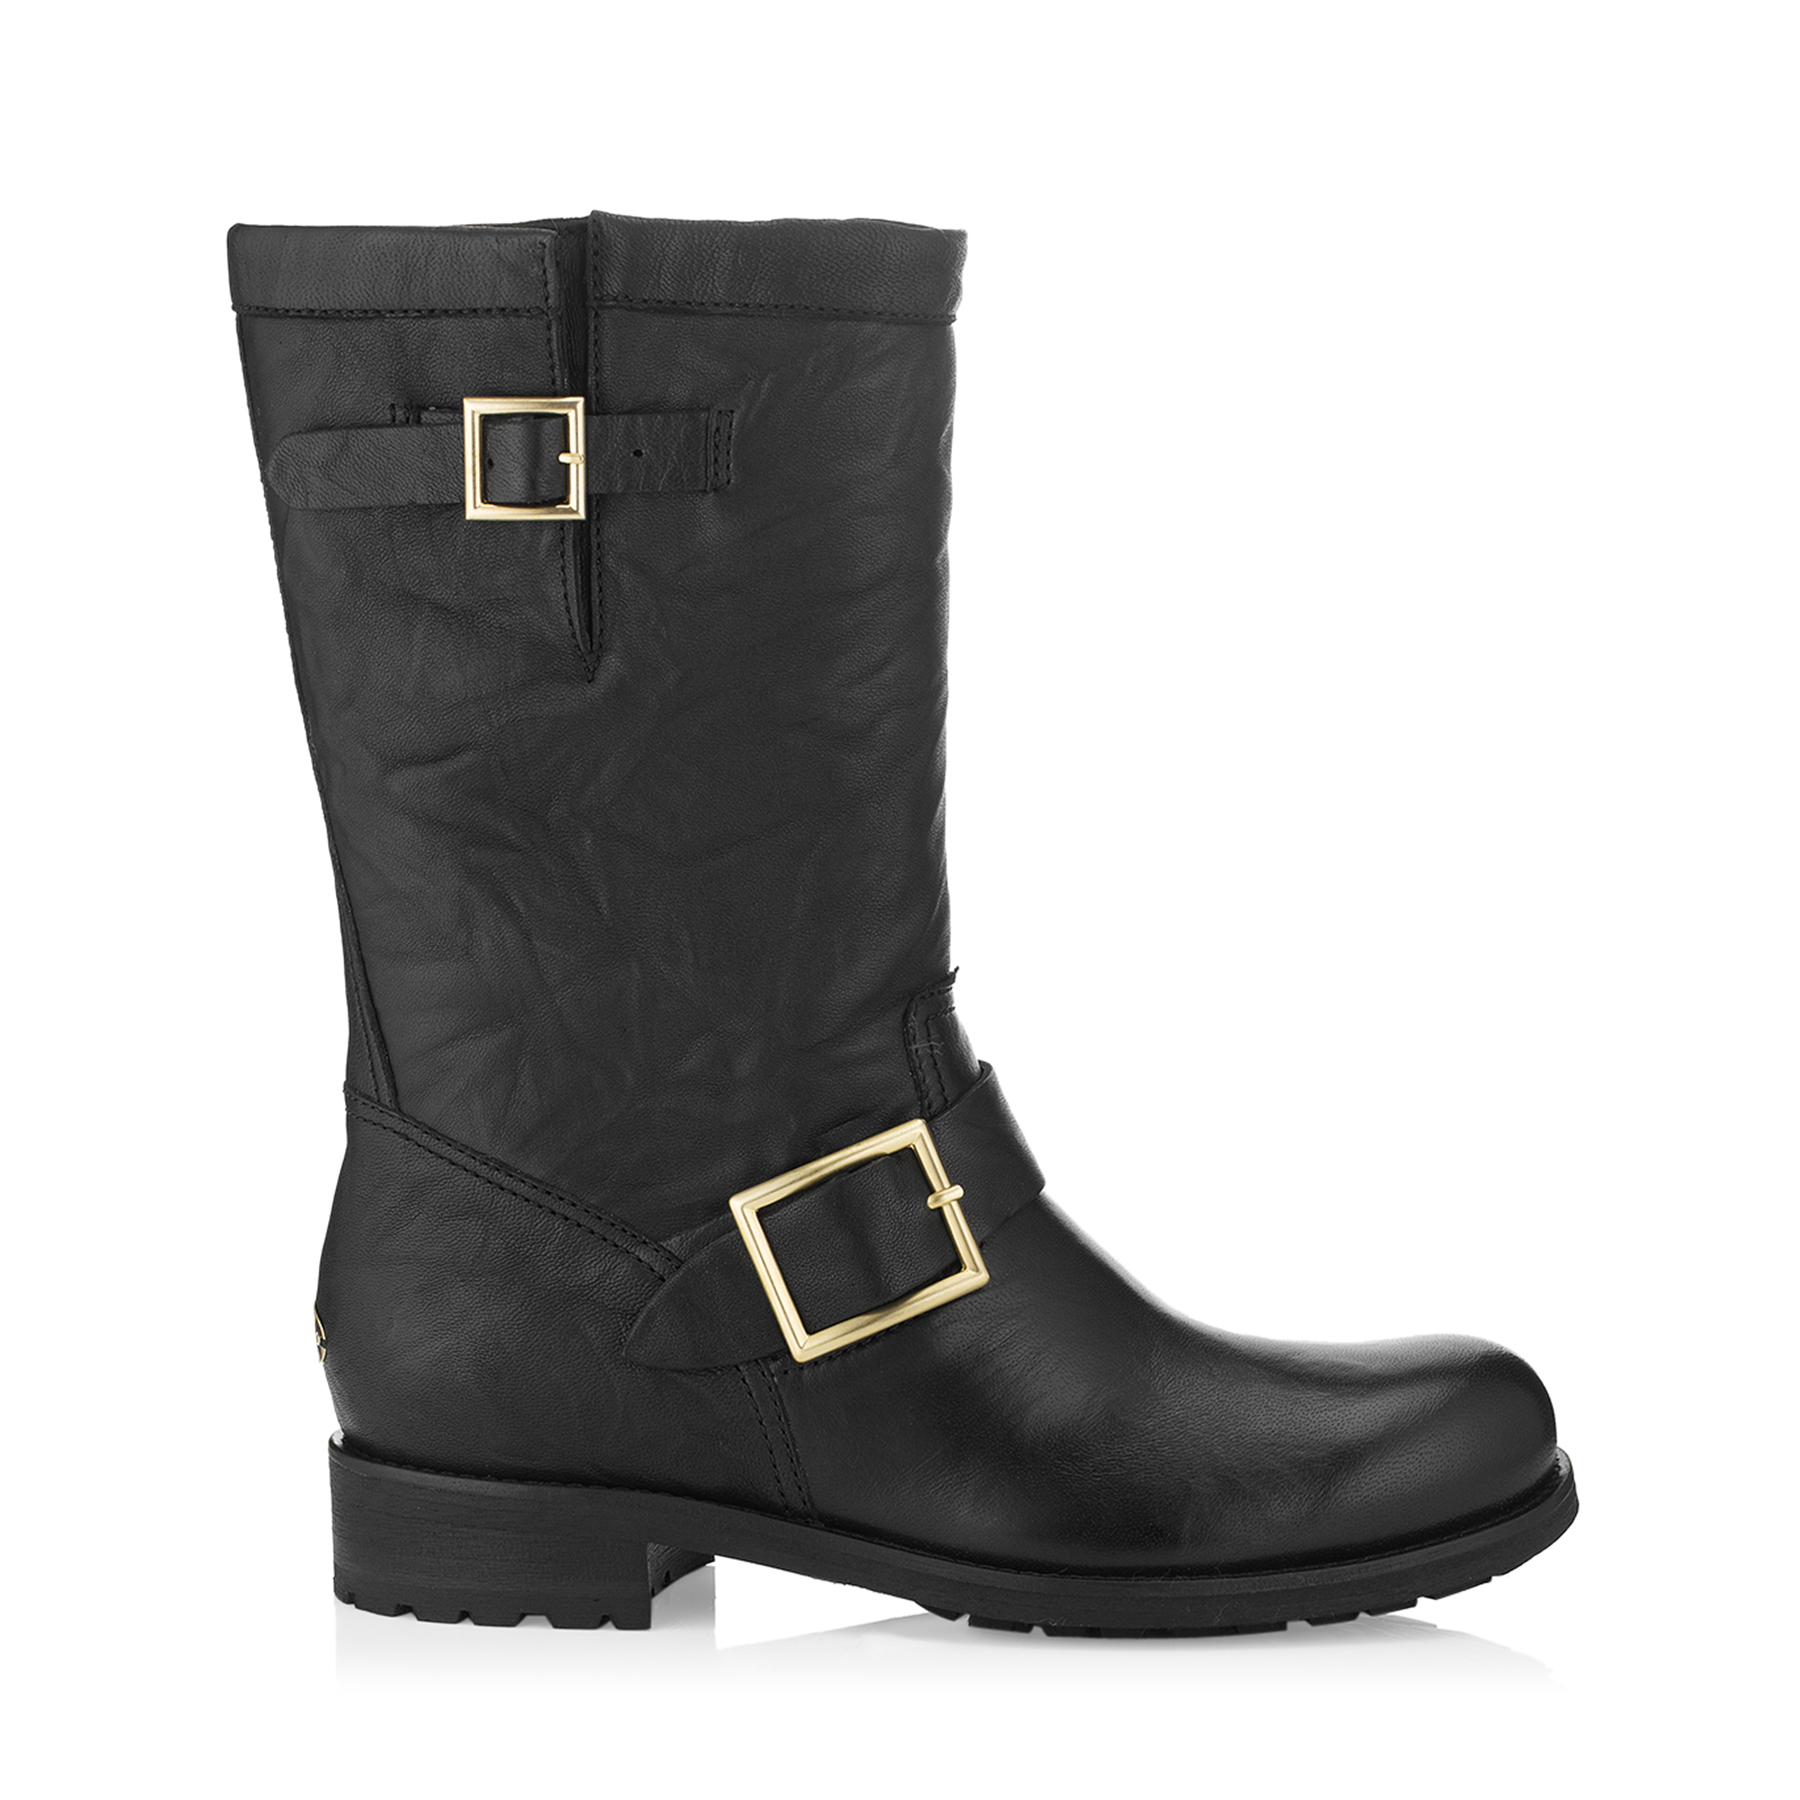 BIKER Black Biker Leather Biker Boots (Unlined) by Jimmy Choo